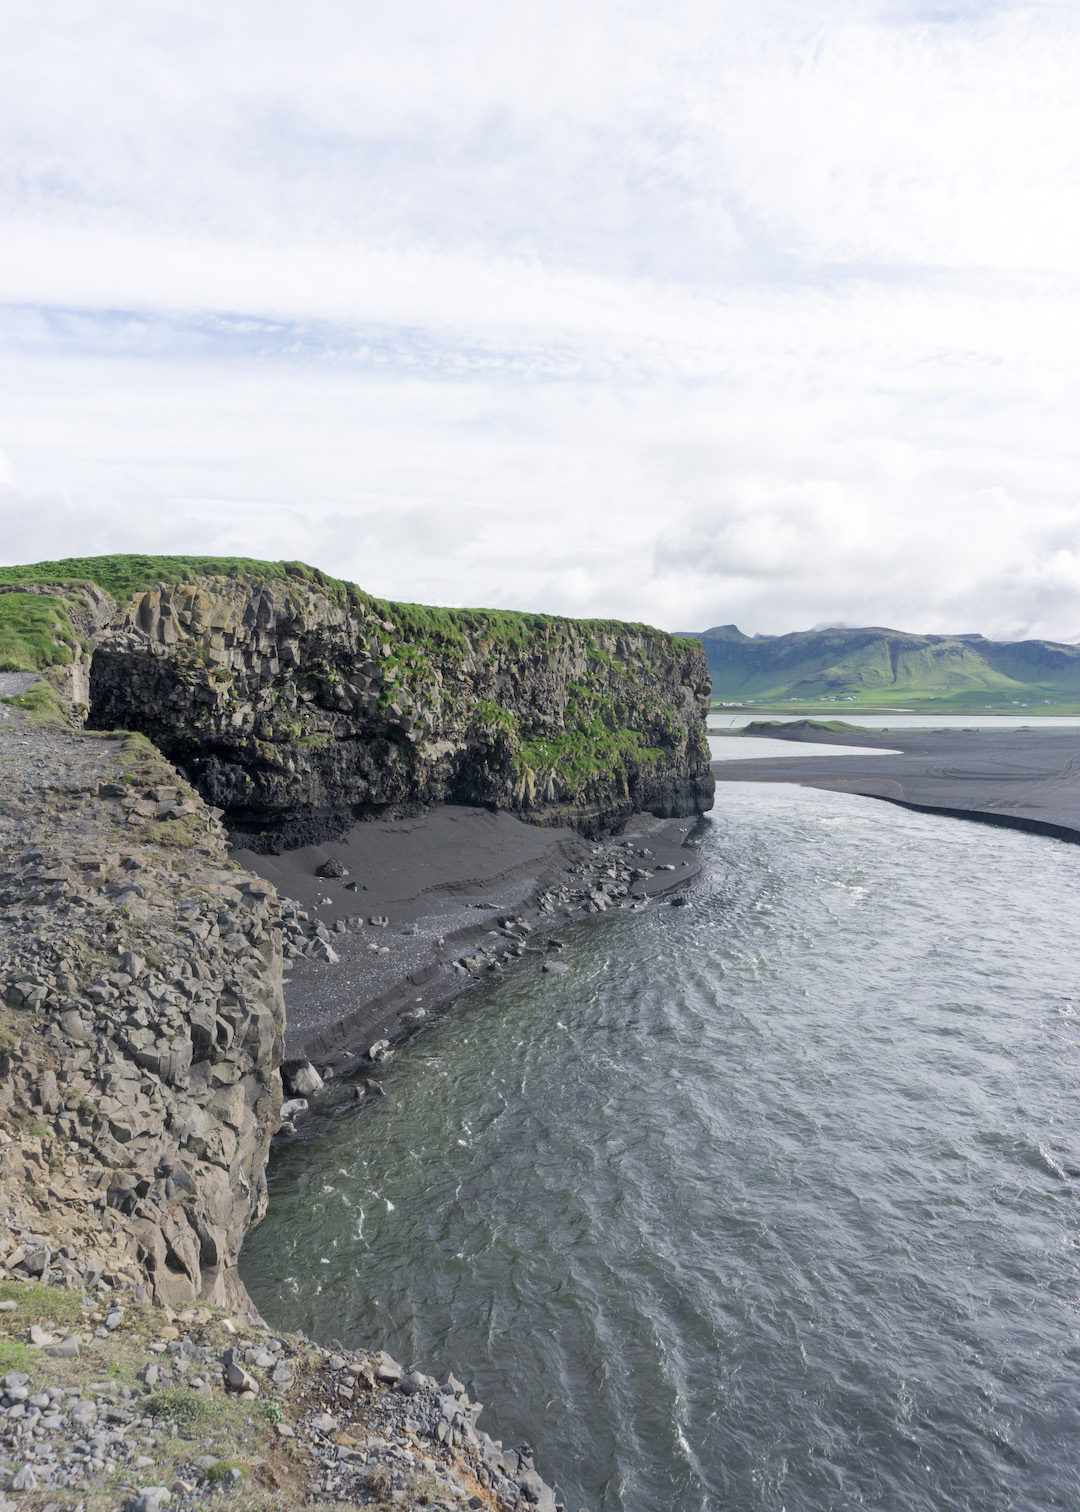 Views from Dyrholaey, South Coast, Iceland